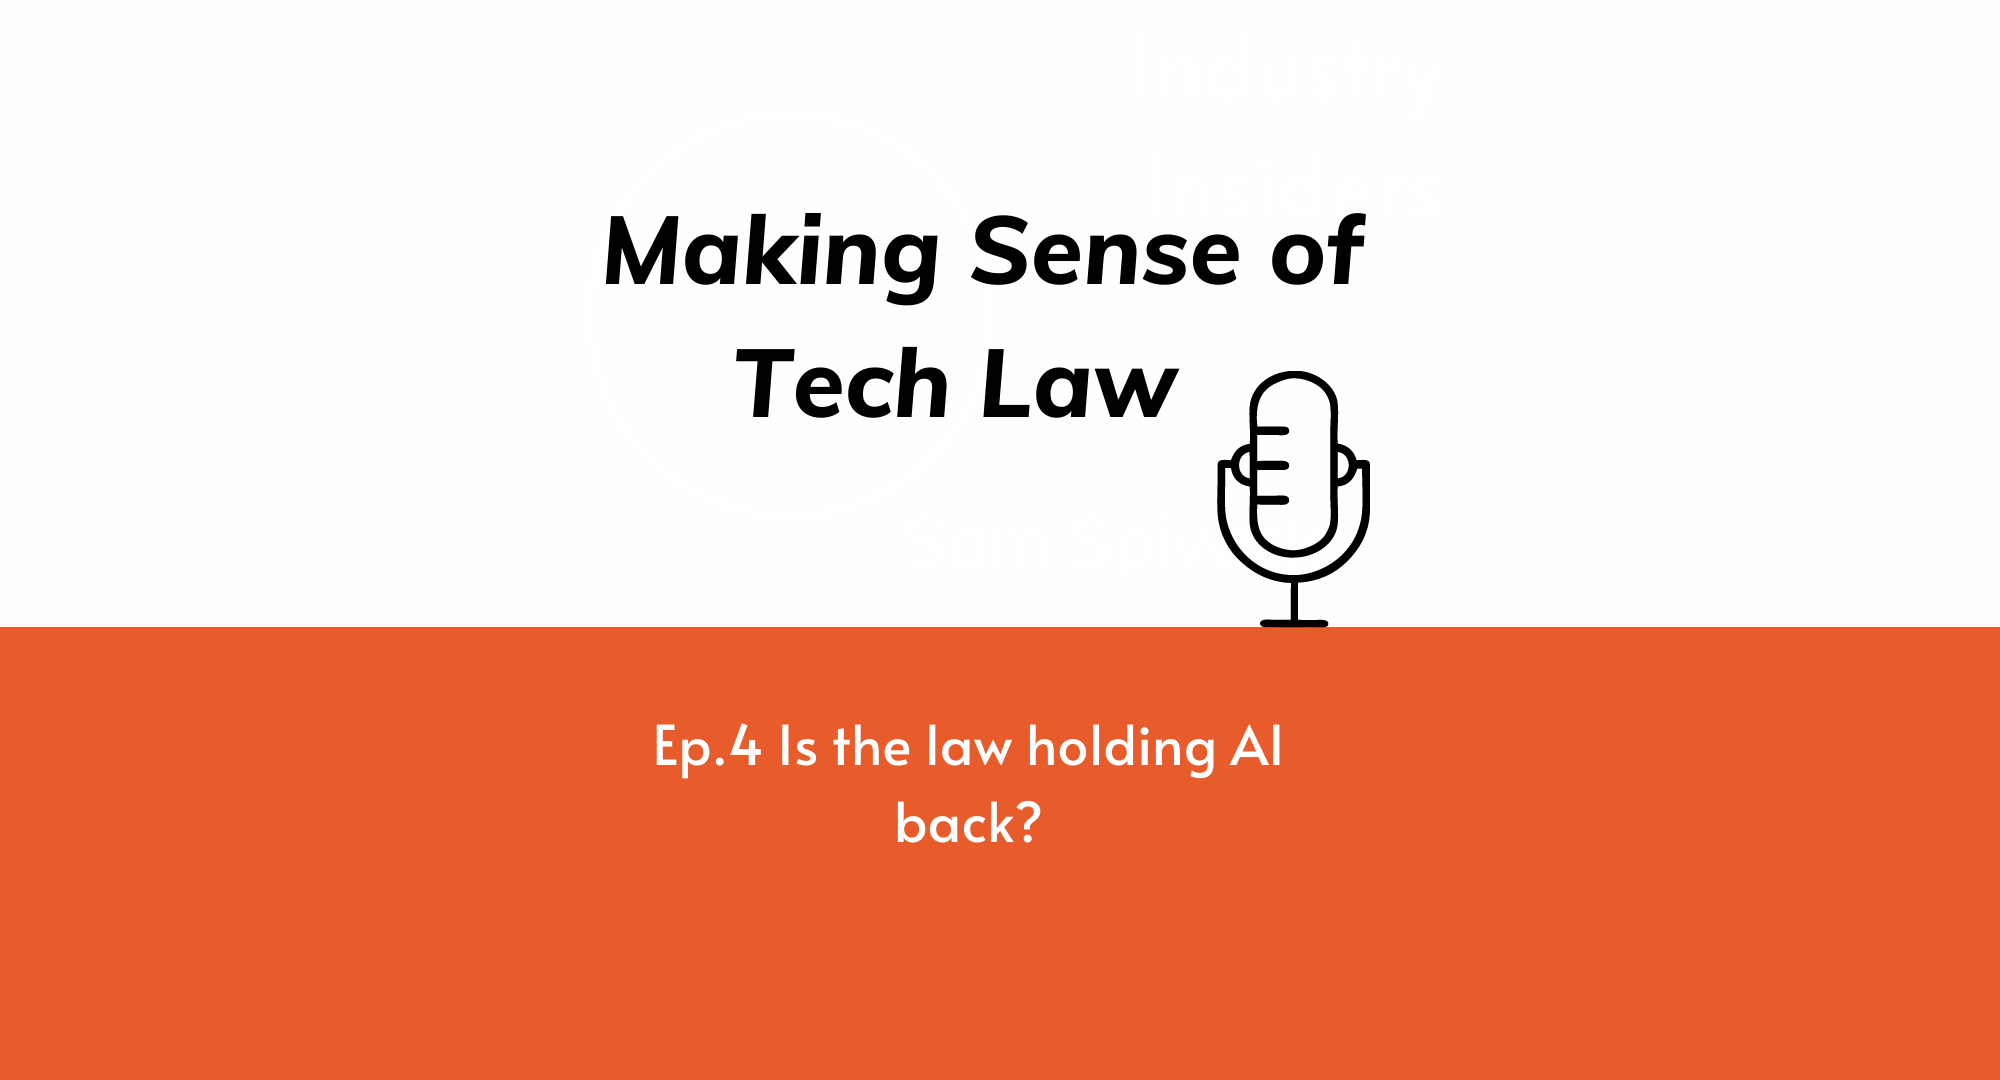 Making Sense of Tech Law Episode 4: Is the law holding AI back?